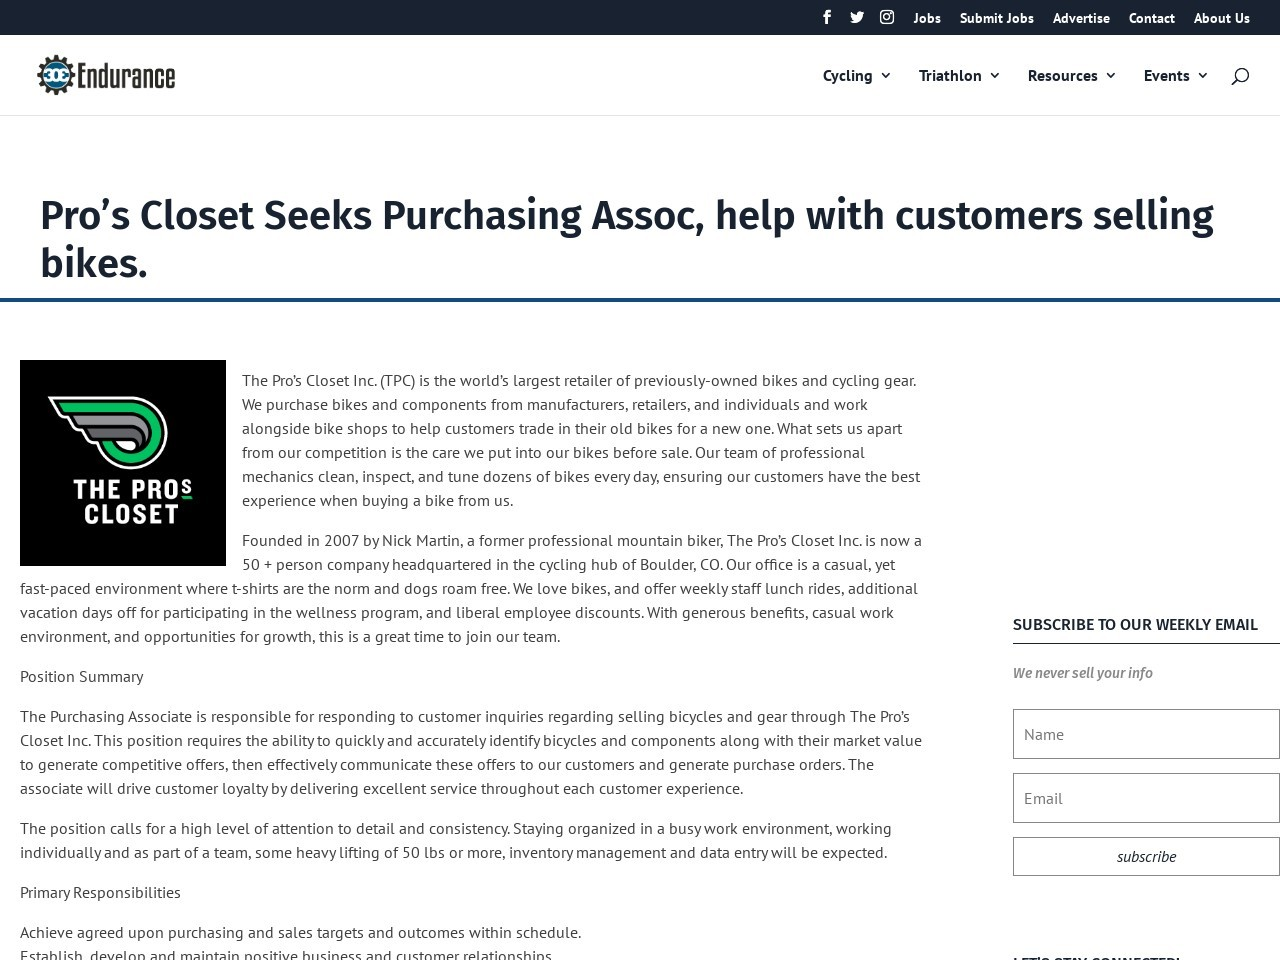 Pro's Closet Seeks Purchasing Assoc, help with customers selling bikes.